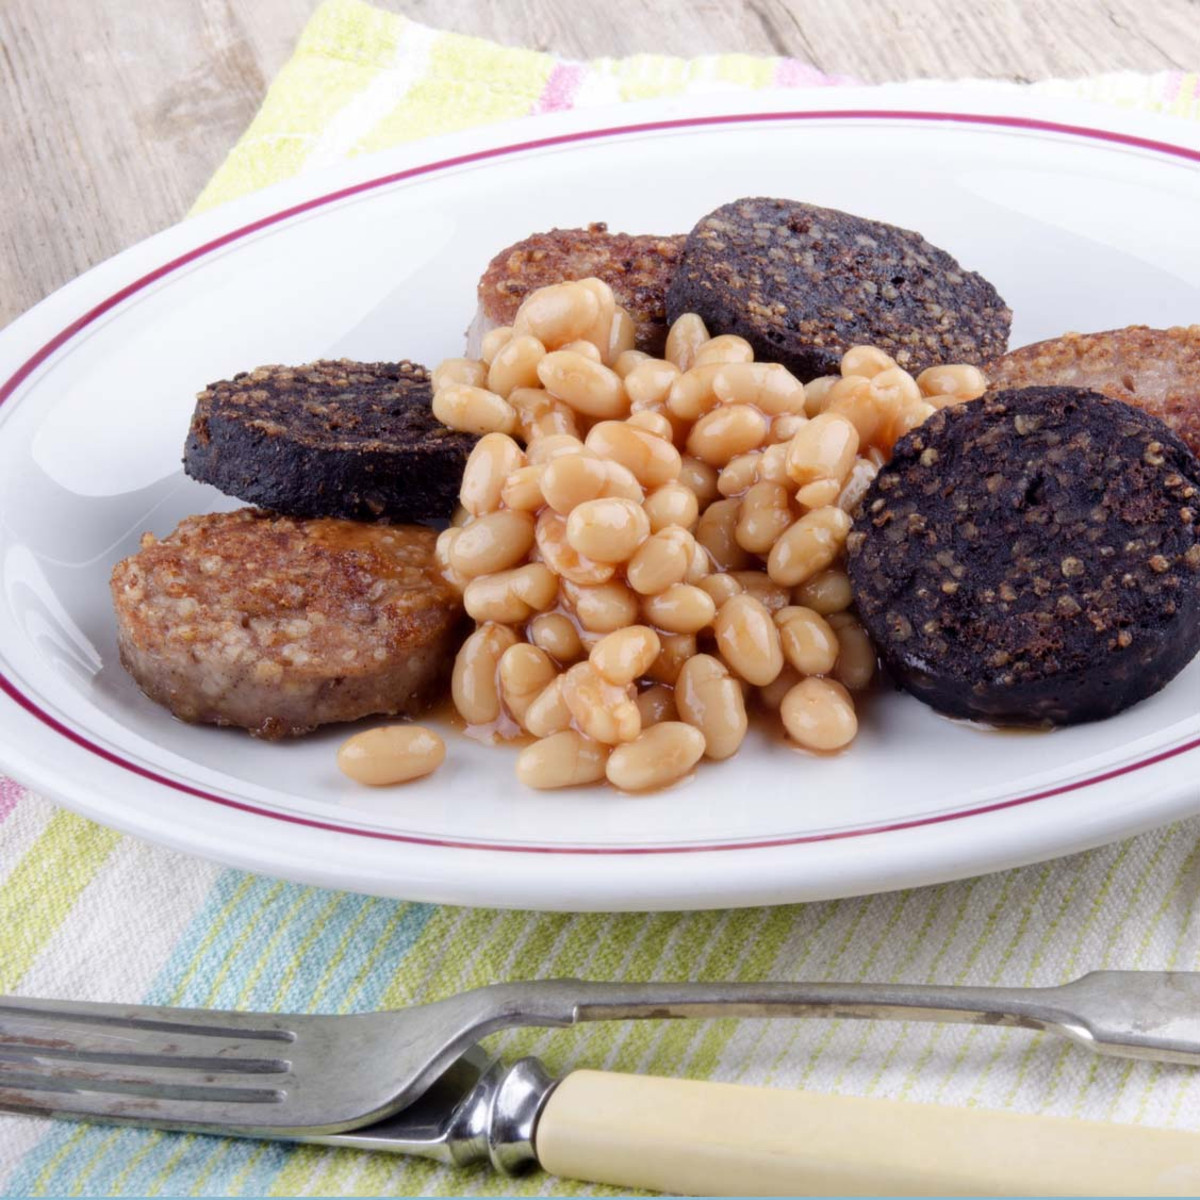 Irish Black and White Pudding Tubes, Mixed Box 10lbs